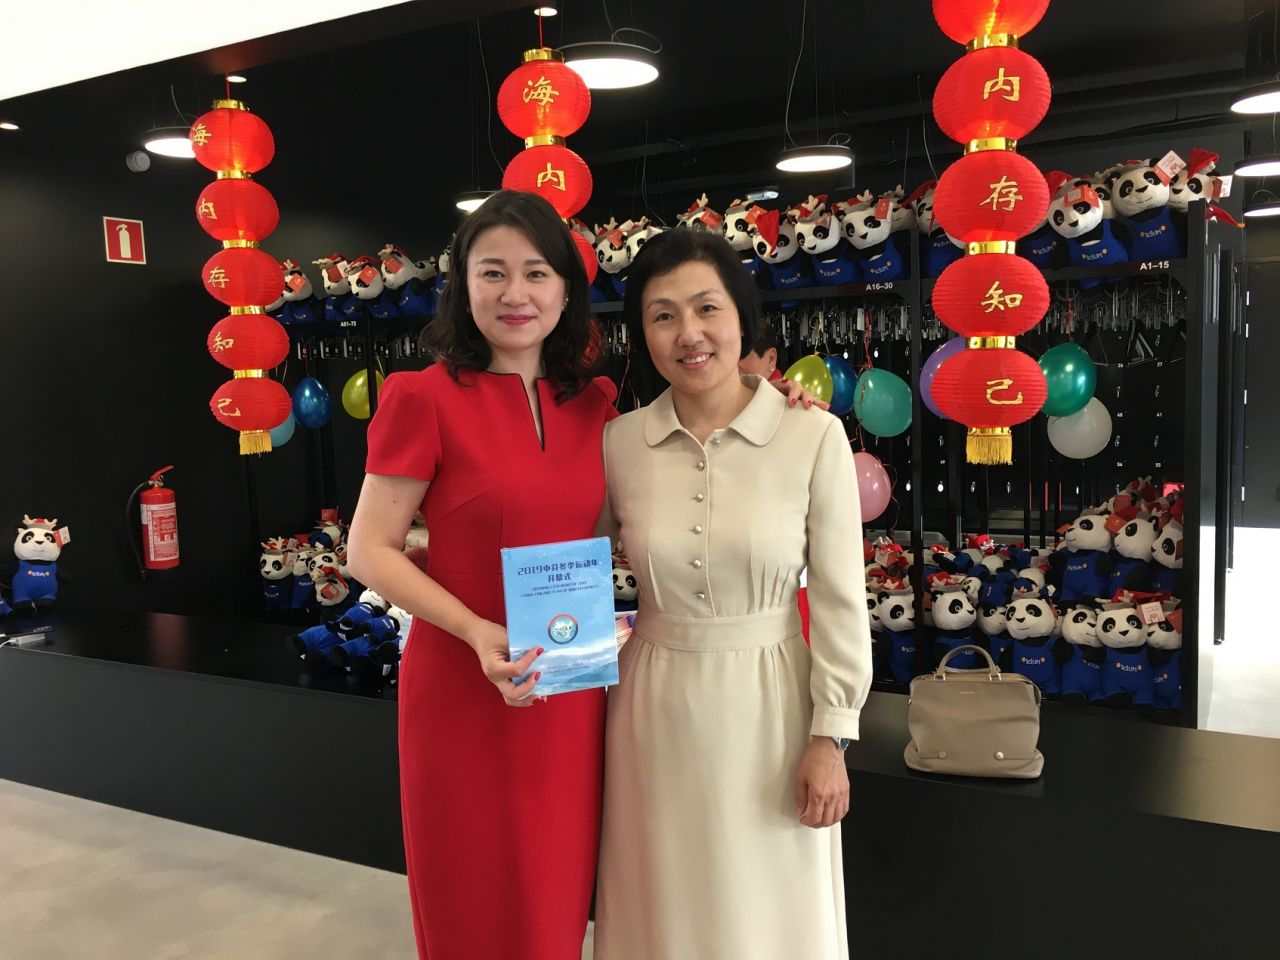 China's ambassador to Finland, Madam Qin Sa (right), with Ms. Lancy Jia (left), CEO of Sumino Oy.